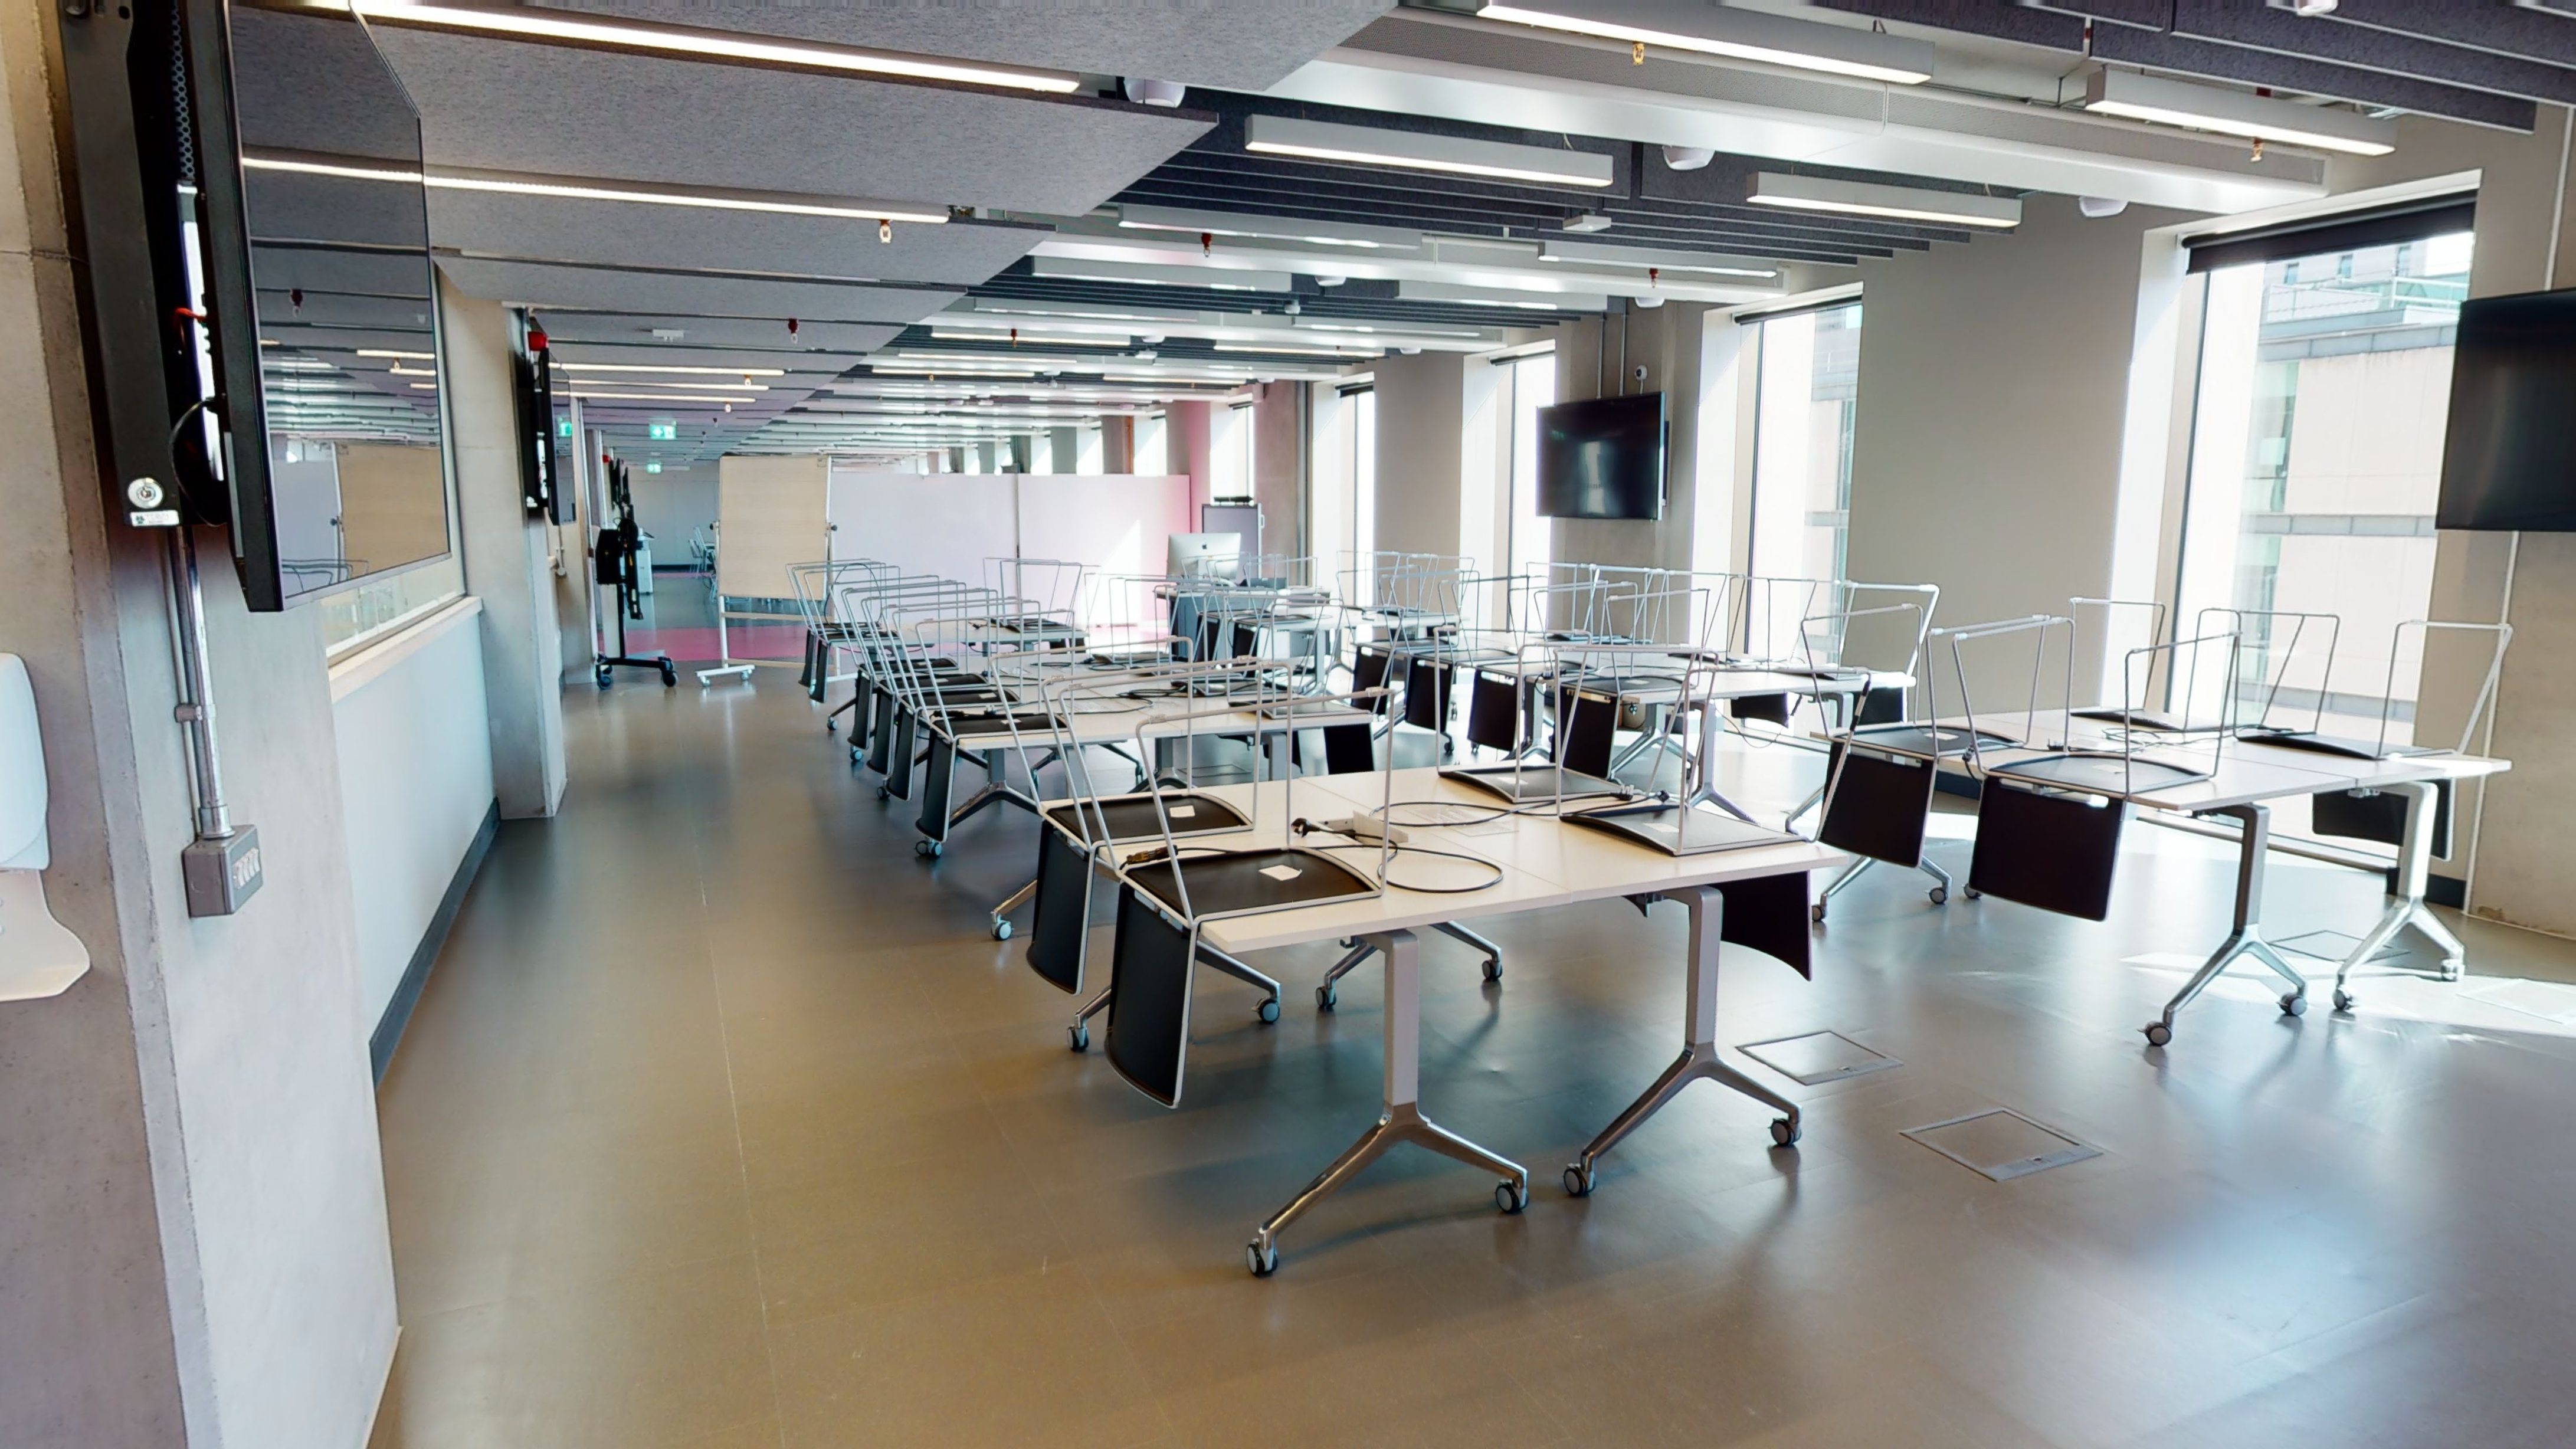 Open modern industrial style classroom/studio space with tables and chairs